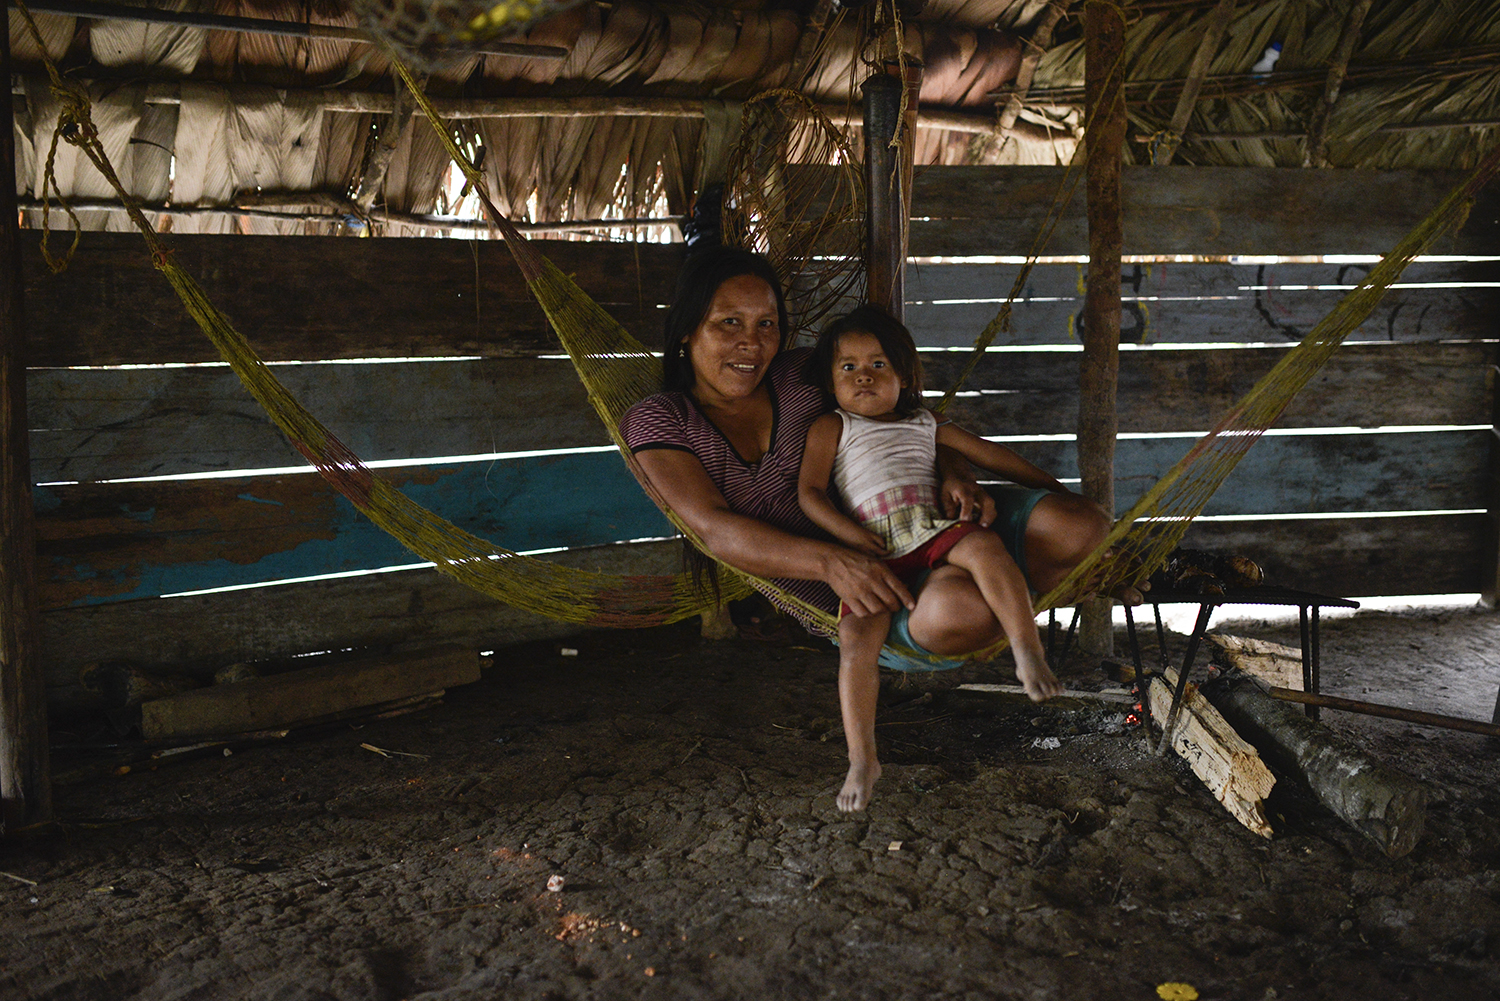 ECUADOR, Yasuni National Park. November 2015.  Numpo and her daughter Jemenca sit on a hammock inside a hut along the river Shiripuno in the Huaorani Reserve of the Yasuni Nation Park. With the construction of the El Auca road, an oil exploration road built in the 1980s during the oil boom of the region, the Huaorani tribe was pushed out and forced to move deeper in the rainforest.